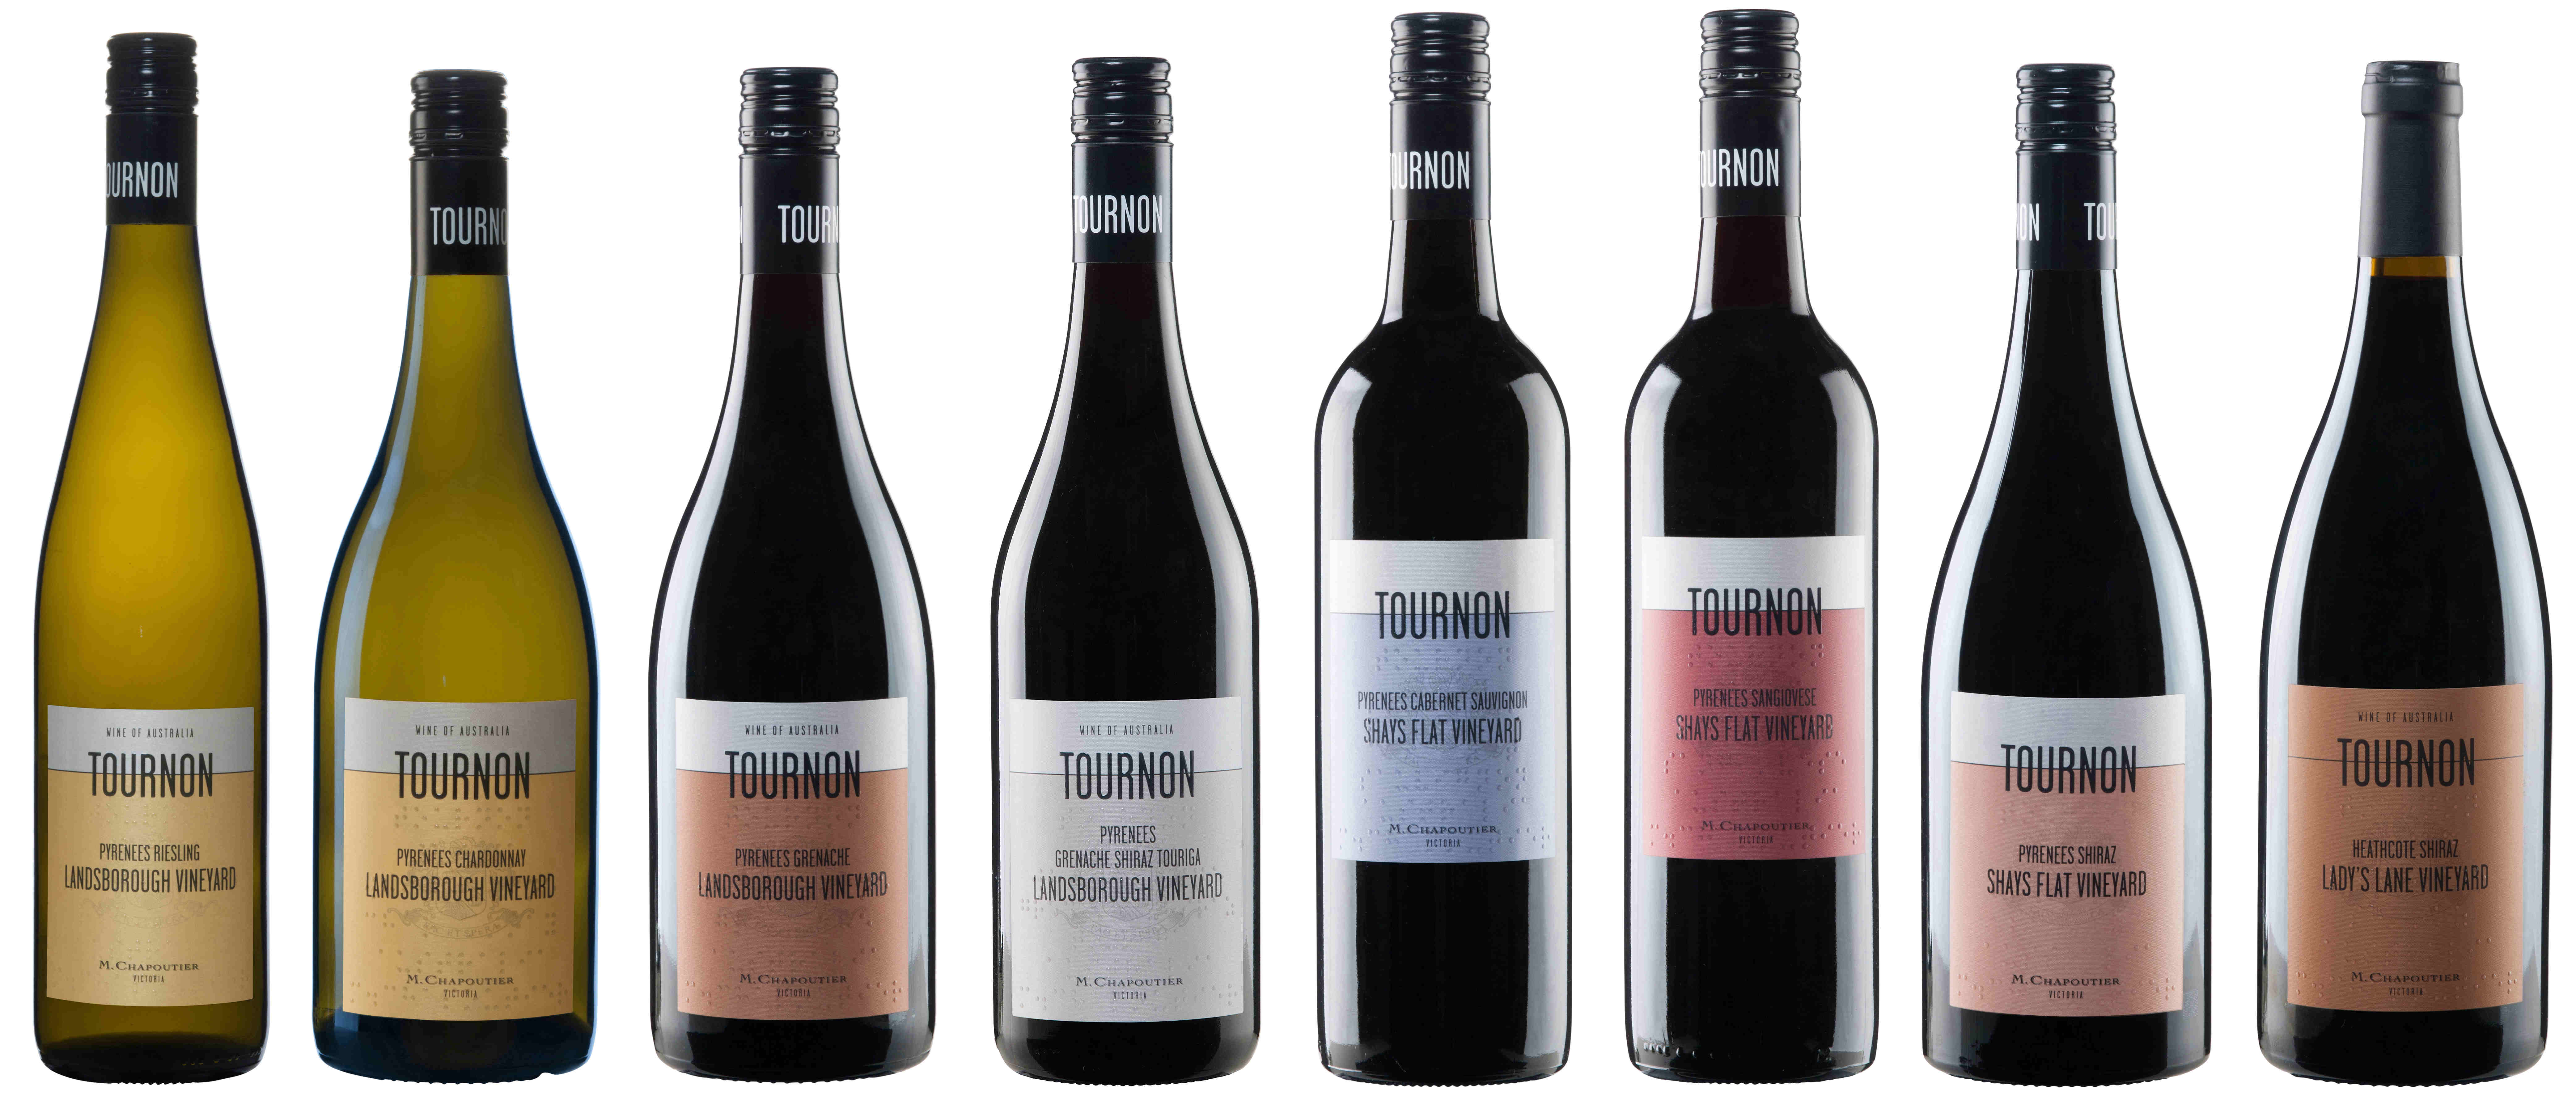 Our Tournon Range